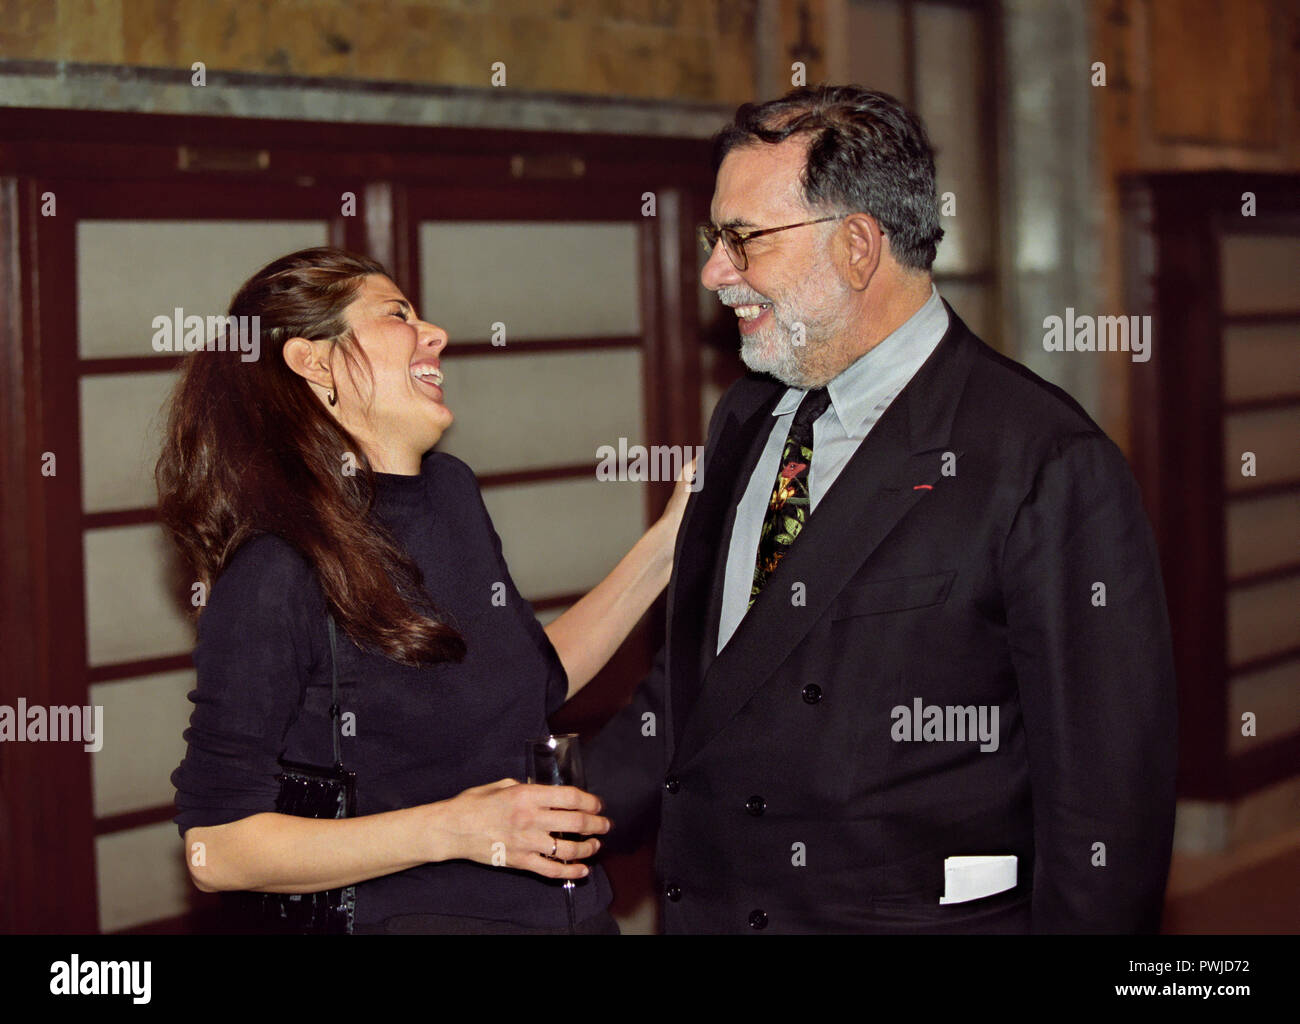 Marisa Tomei laughing with Francis Ford Coppola at a literary event for the movie industry at the New York Public Library - Stock Image